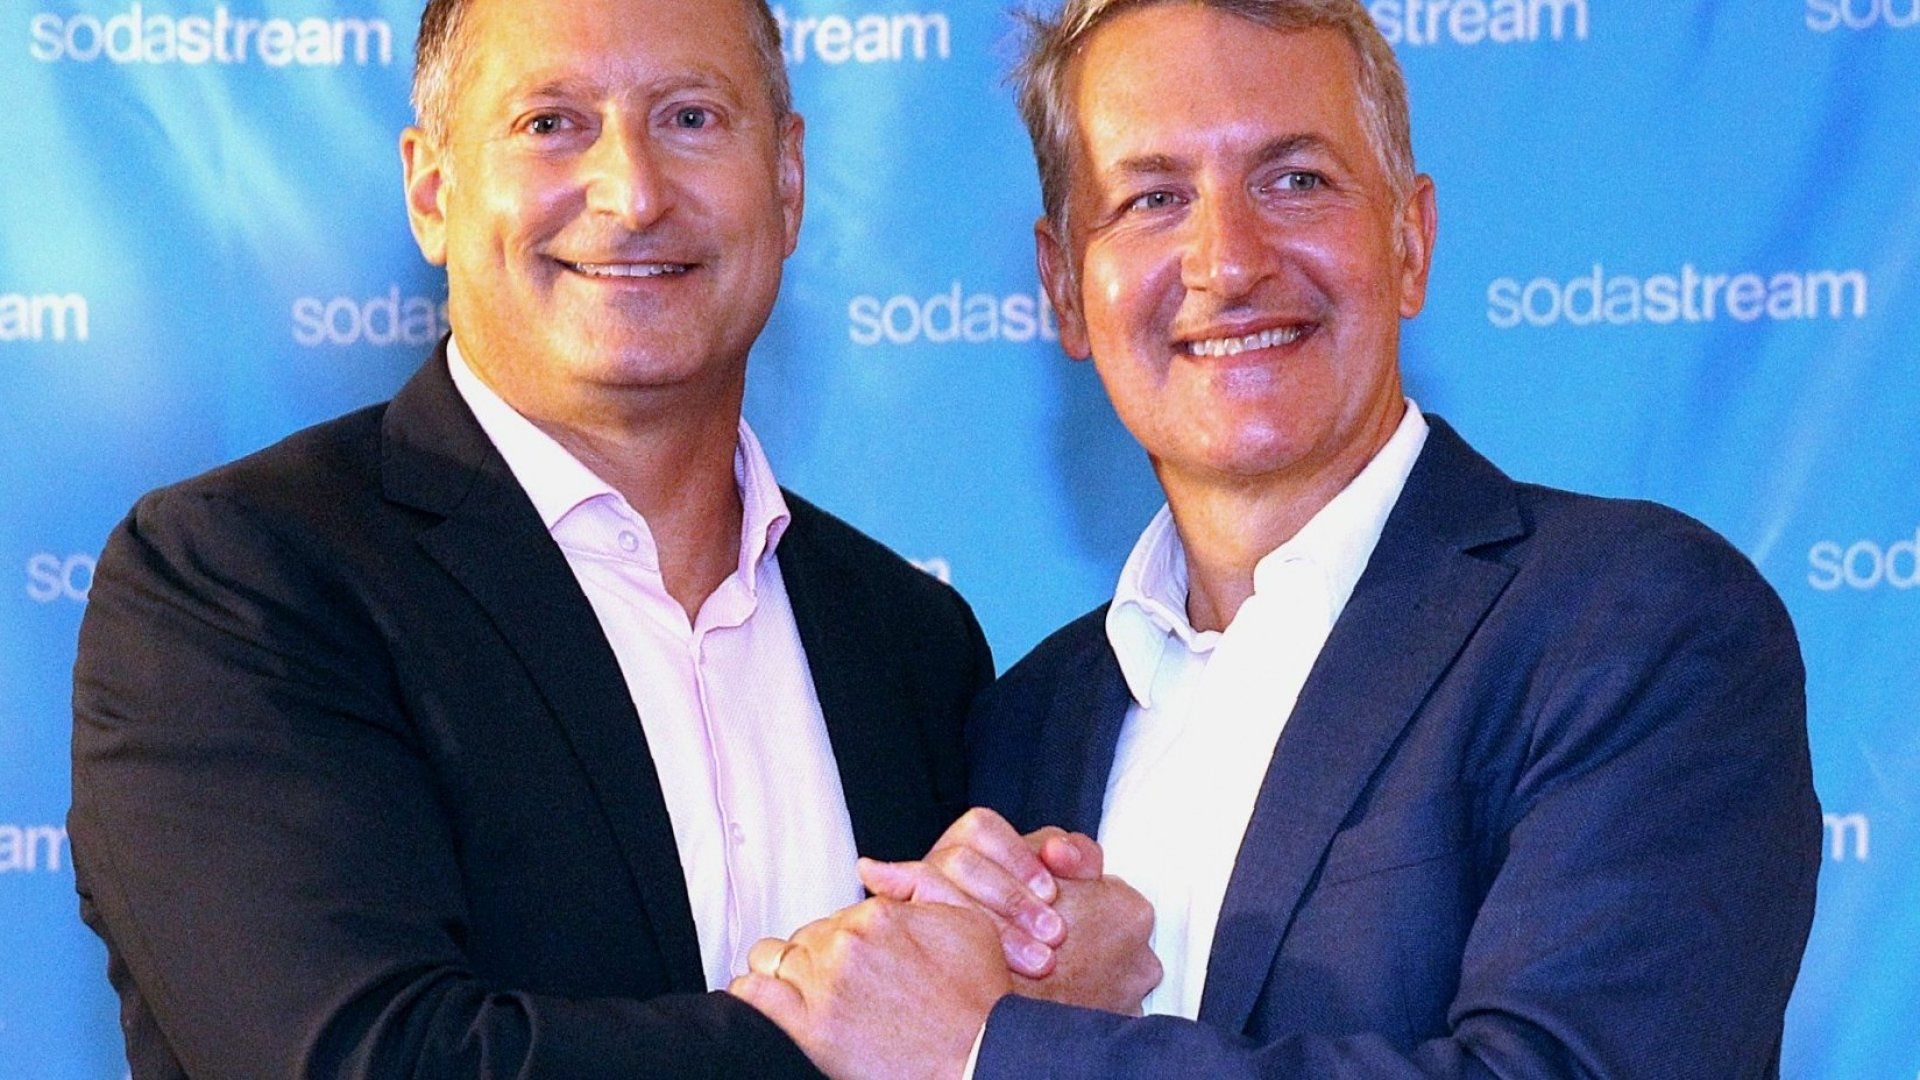 When Your Enemy Becomes Your Friend: The Love Story of SodaStream and Pepsi